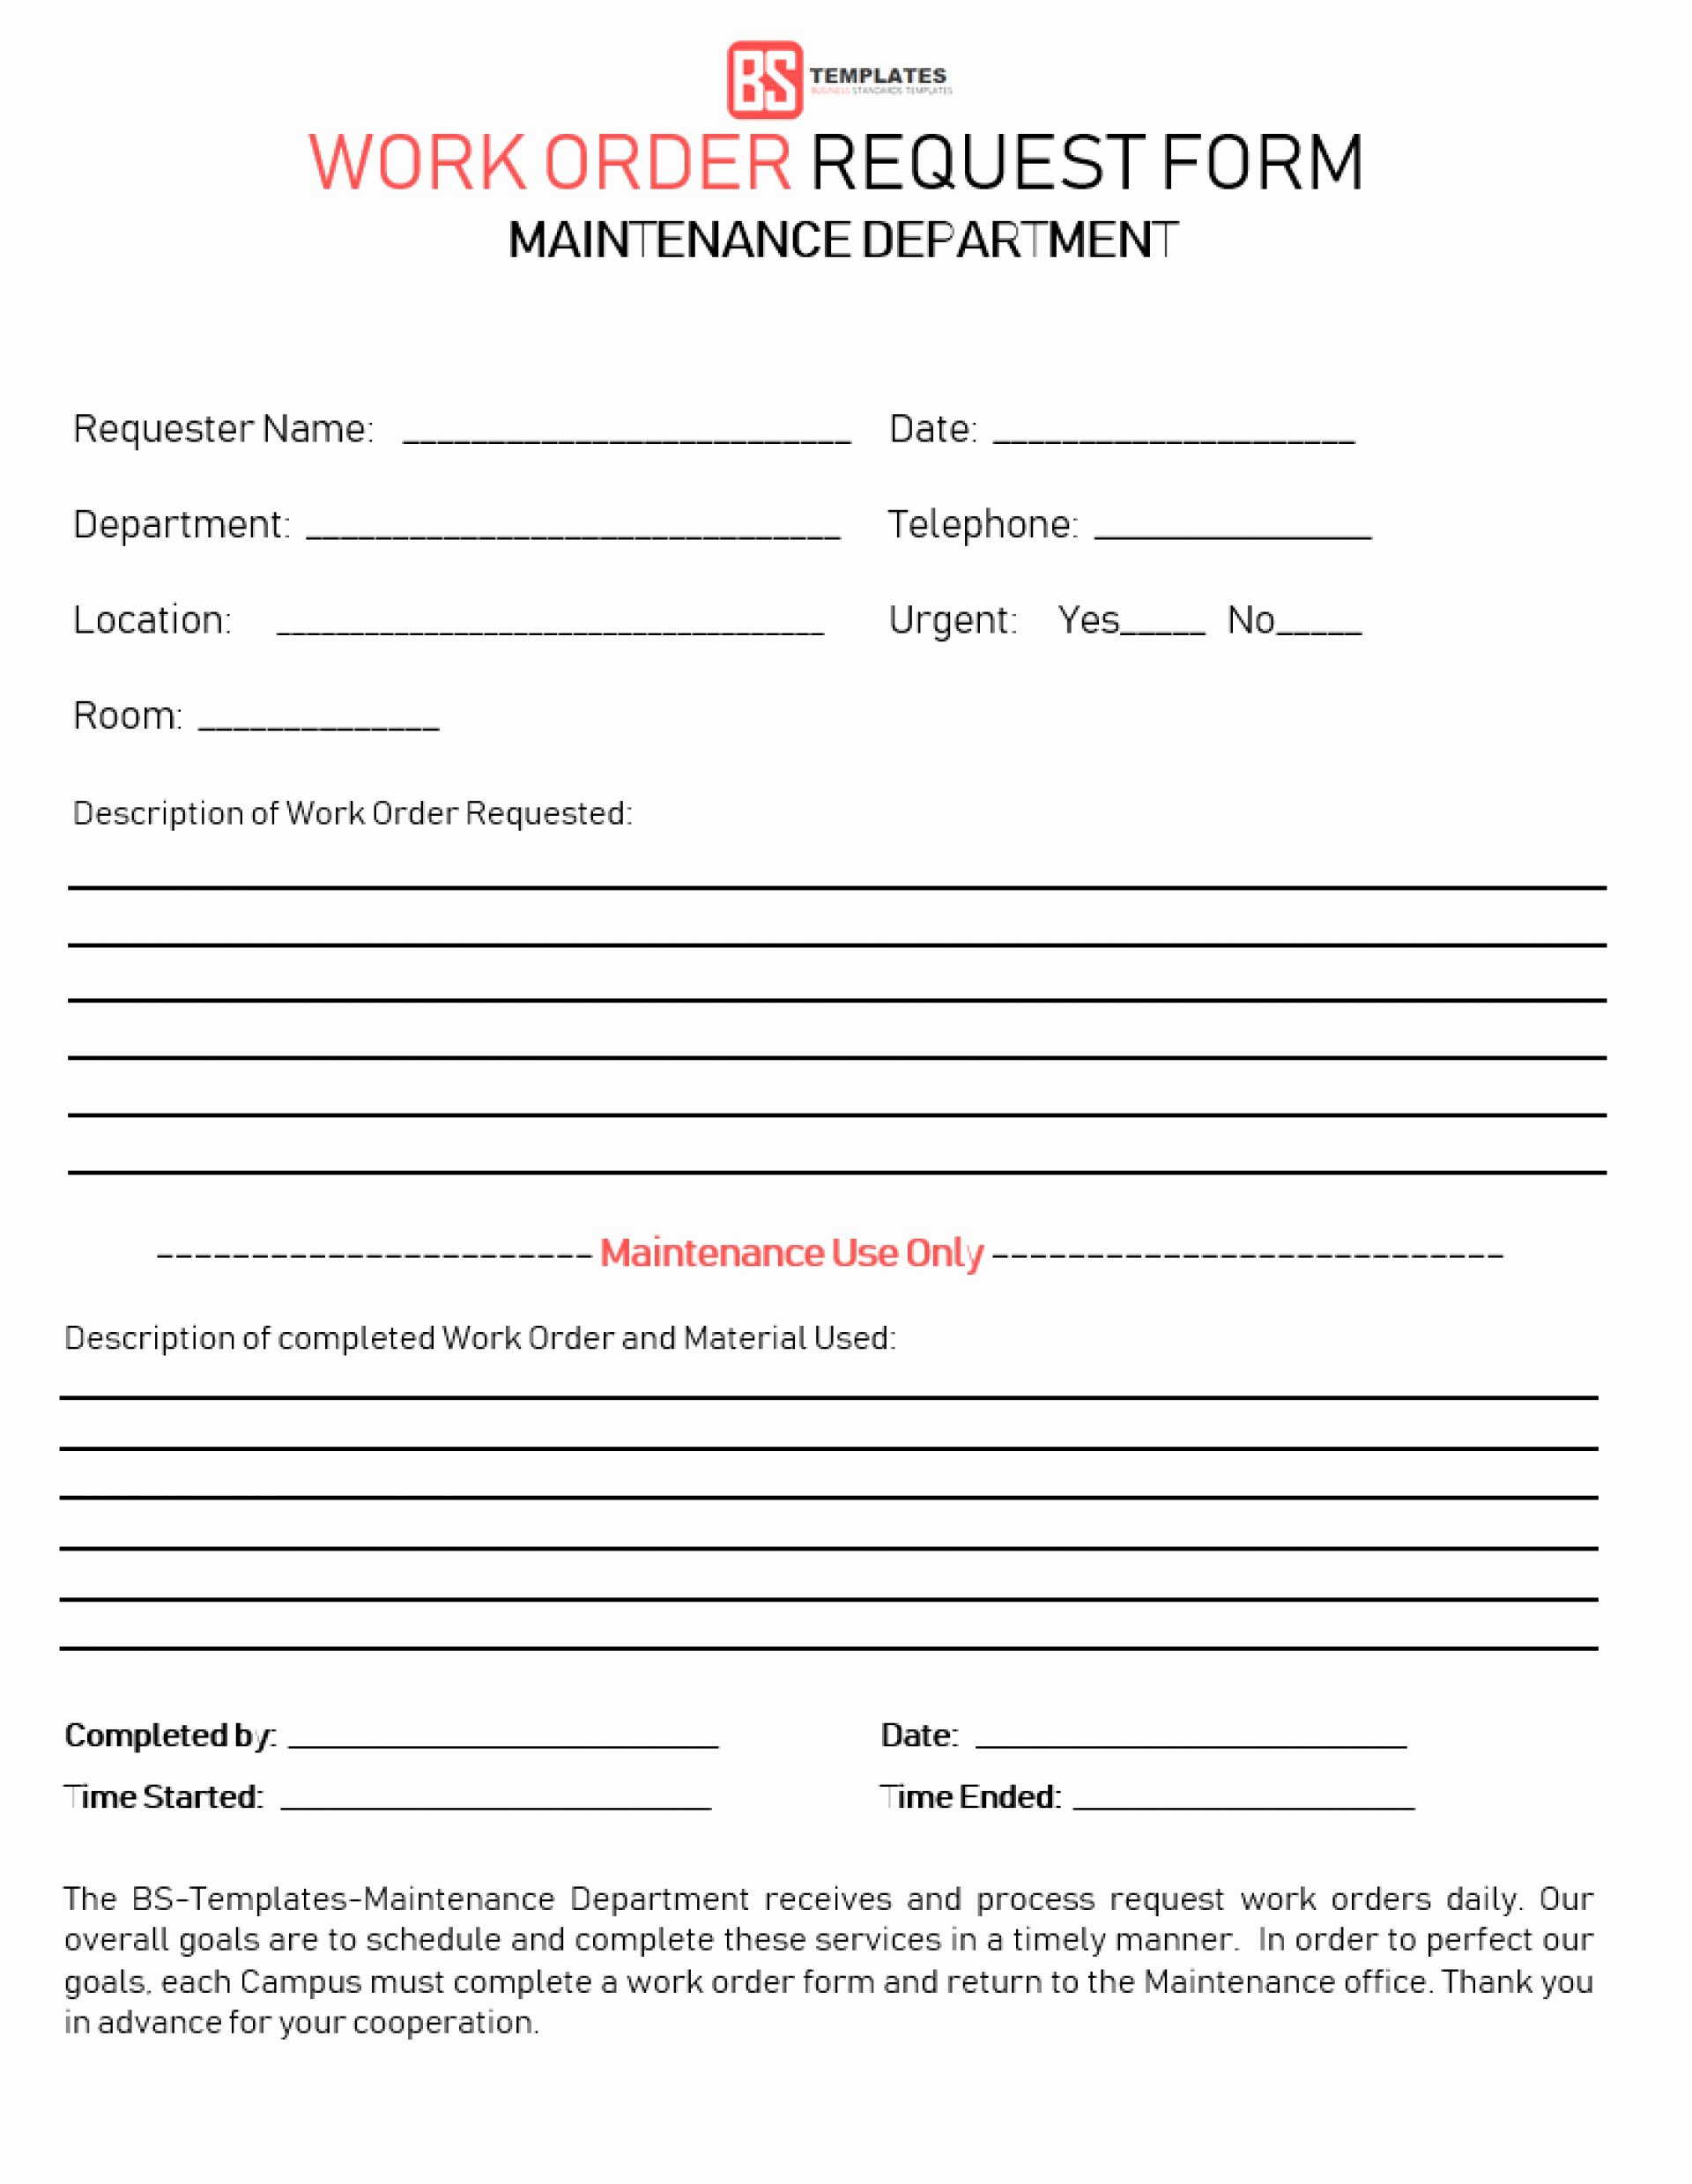 Embroidery order form Template Lovely Work order forms Request form Pdf with Blank Templates